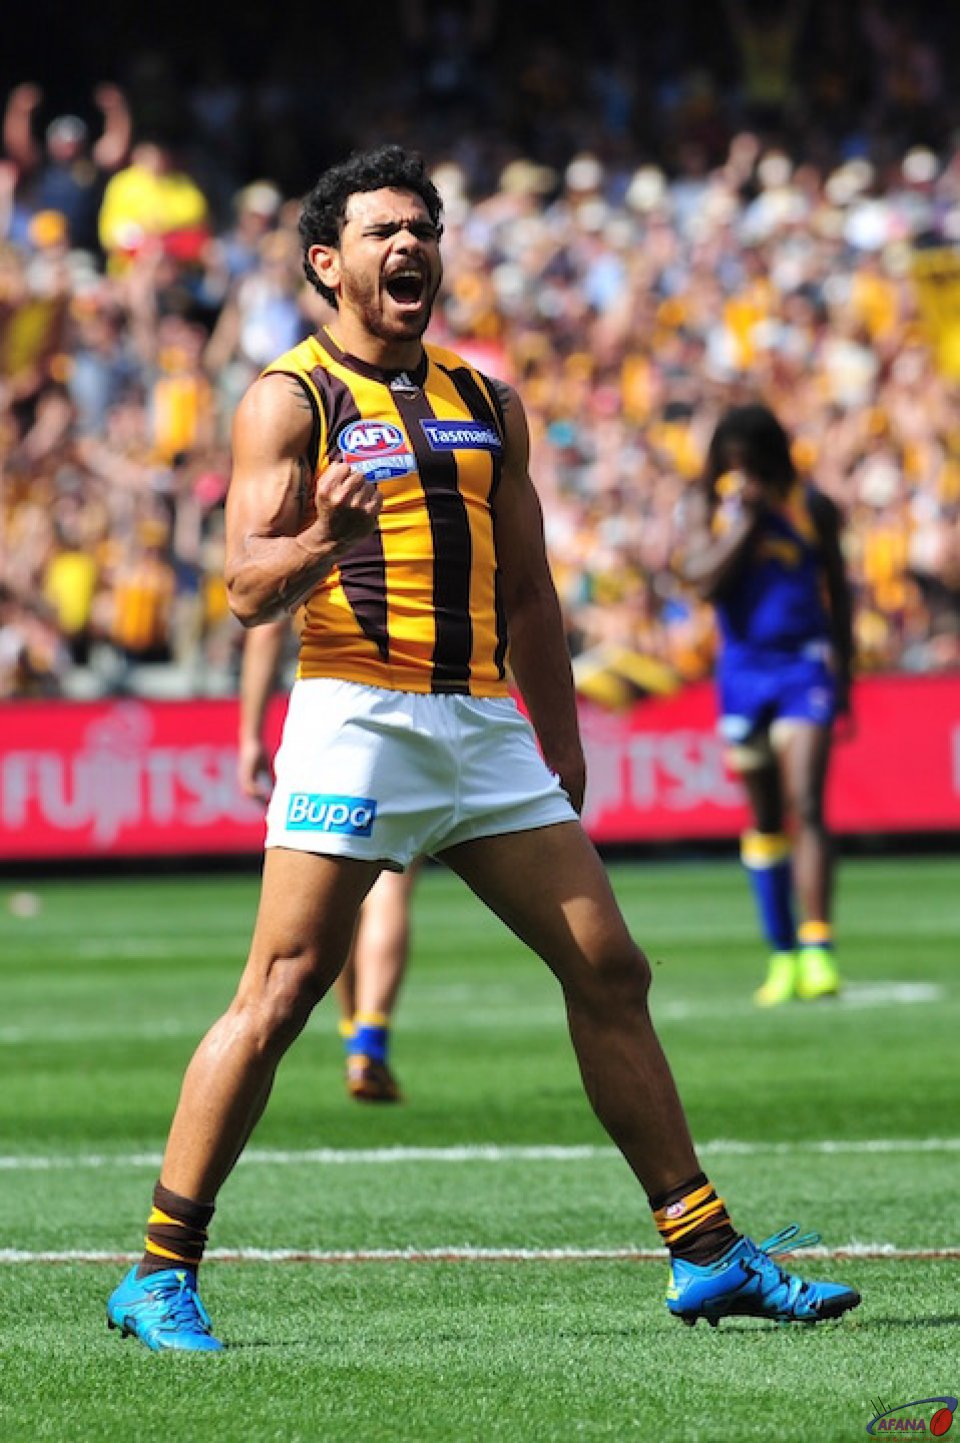 Rioli bags another goal